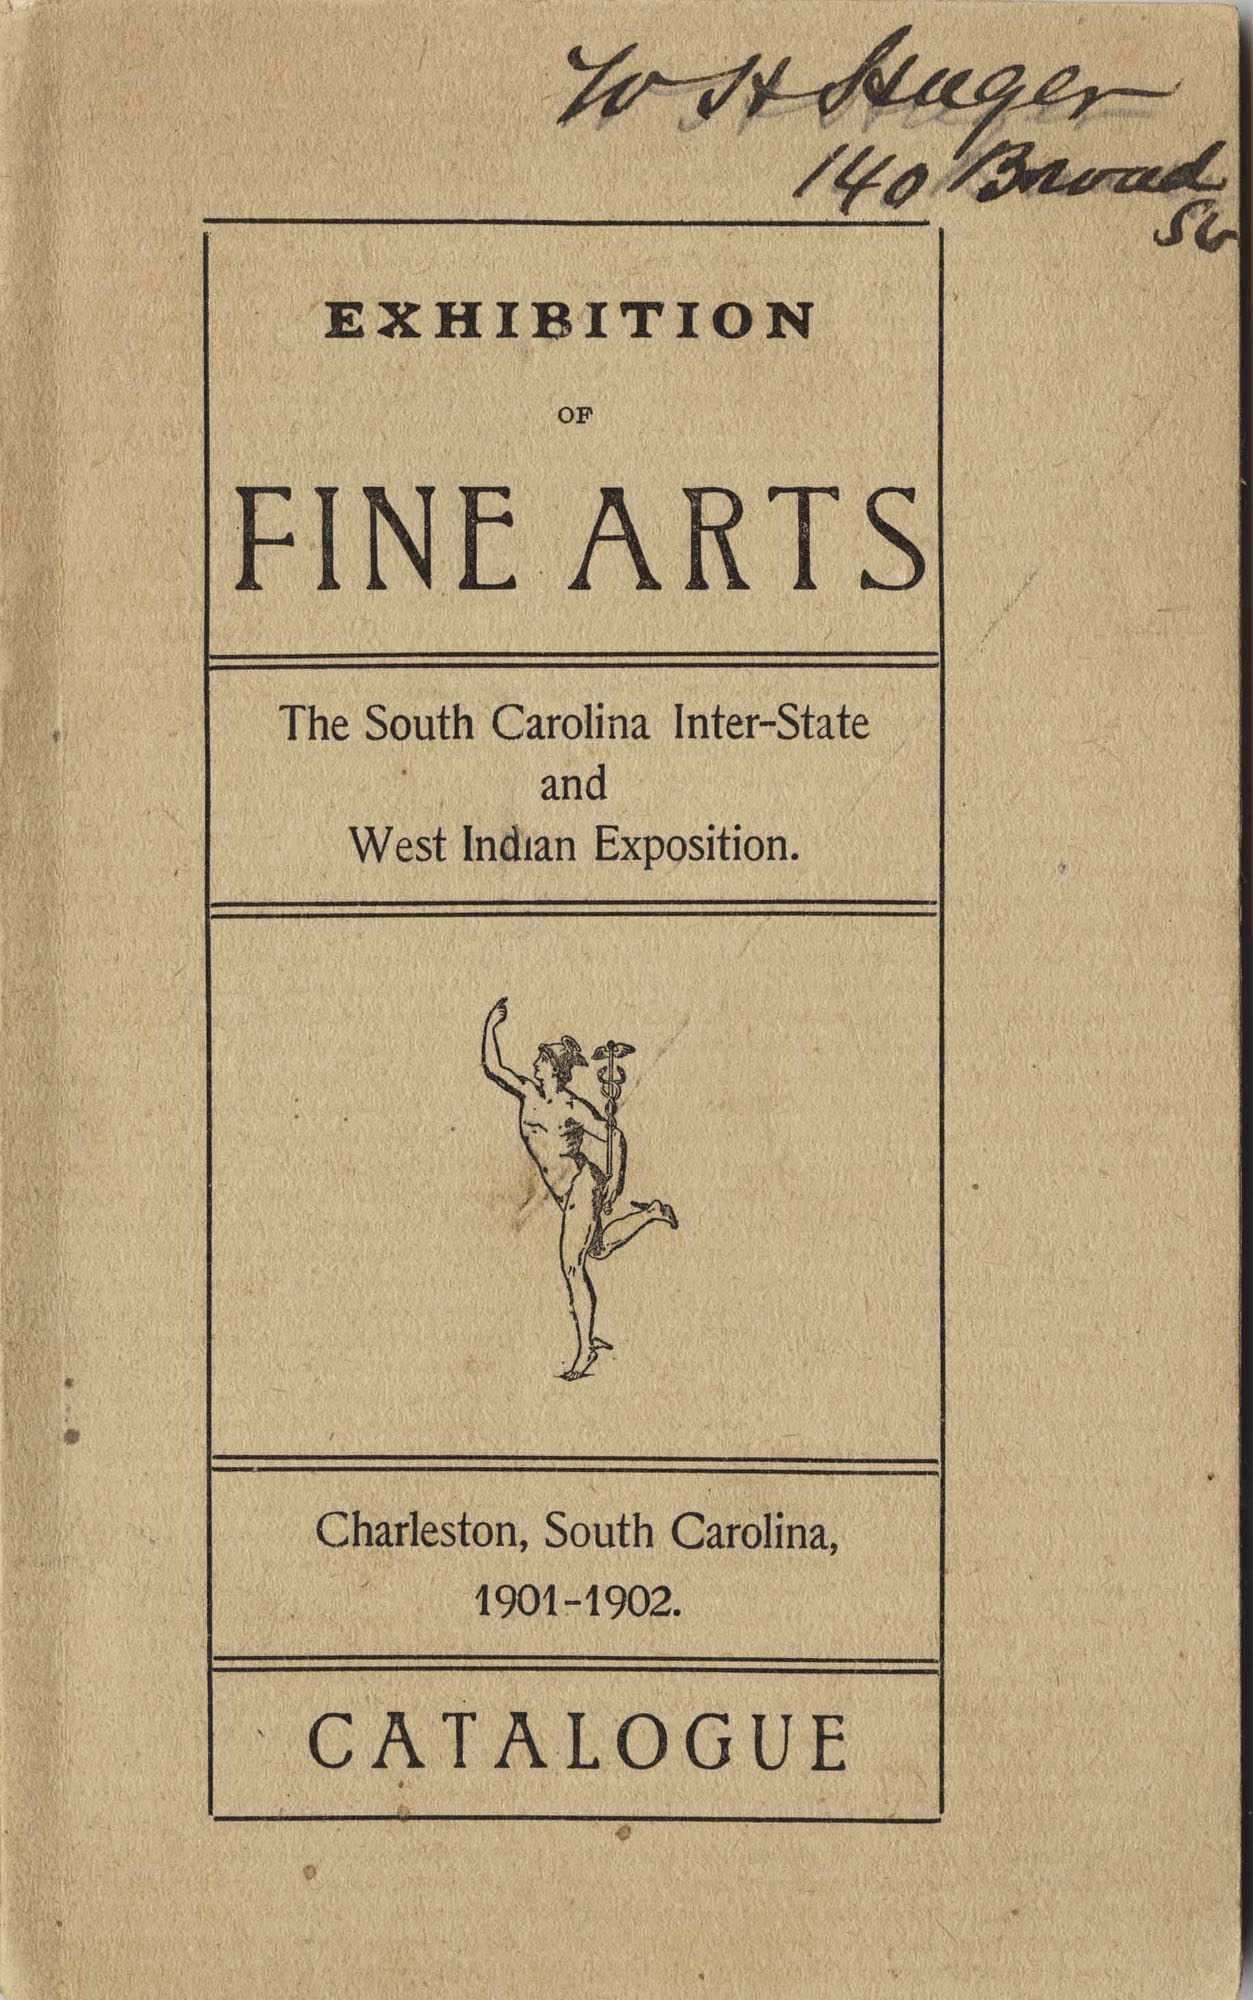 Exhibition of Fine Arts: The South Carolina Inter-State and West Indian Exposition: Catalogue